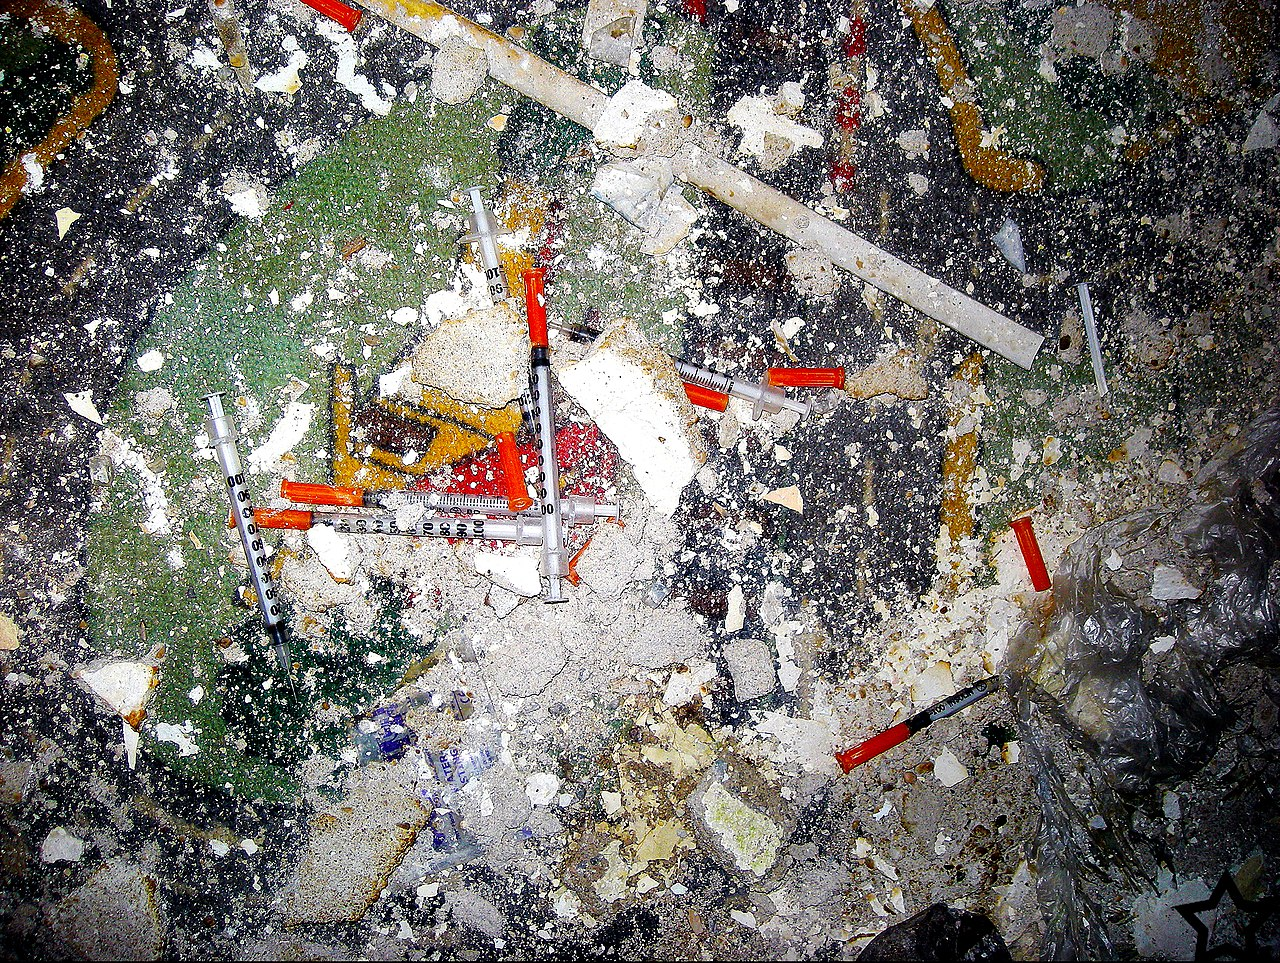 discarded syringes and garbage